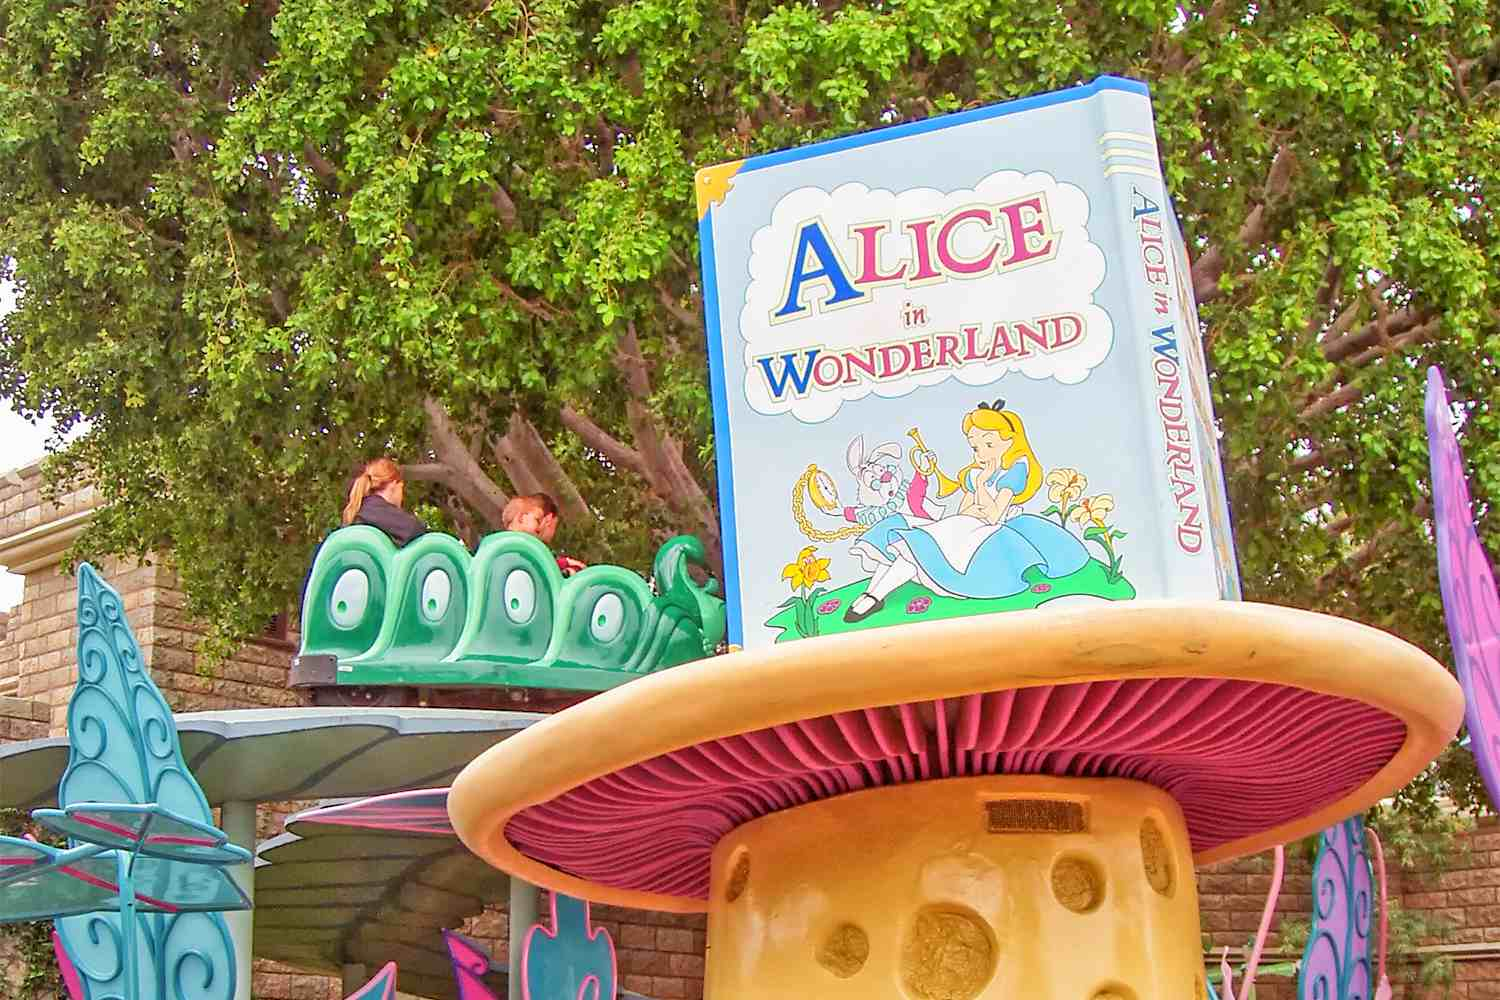 alice in wonderland at disneyland things to know